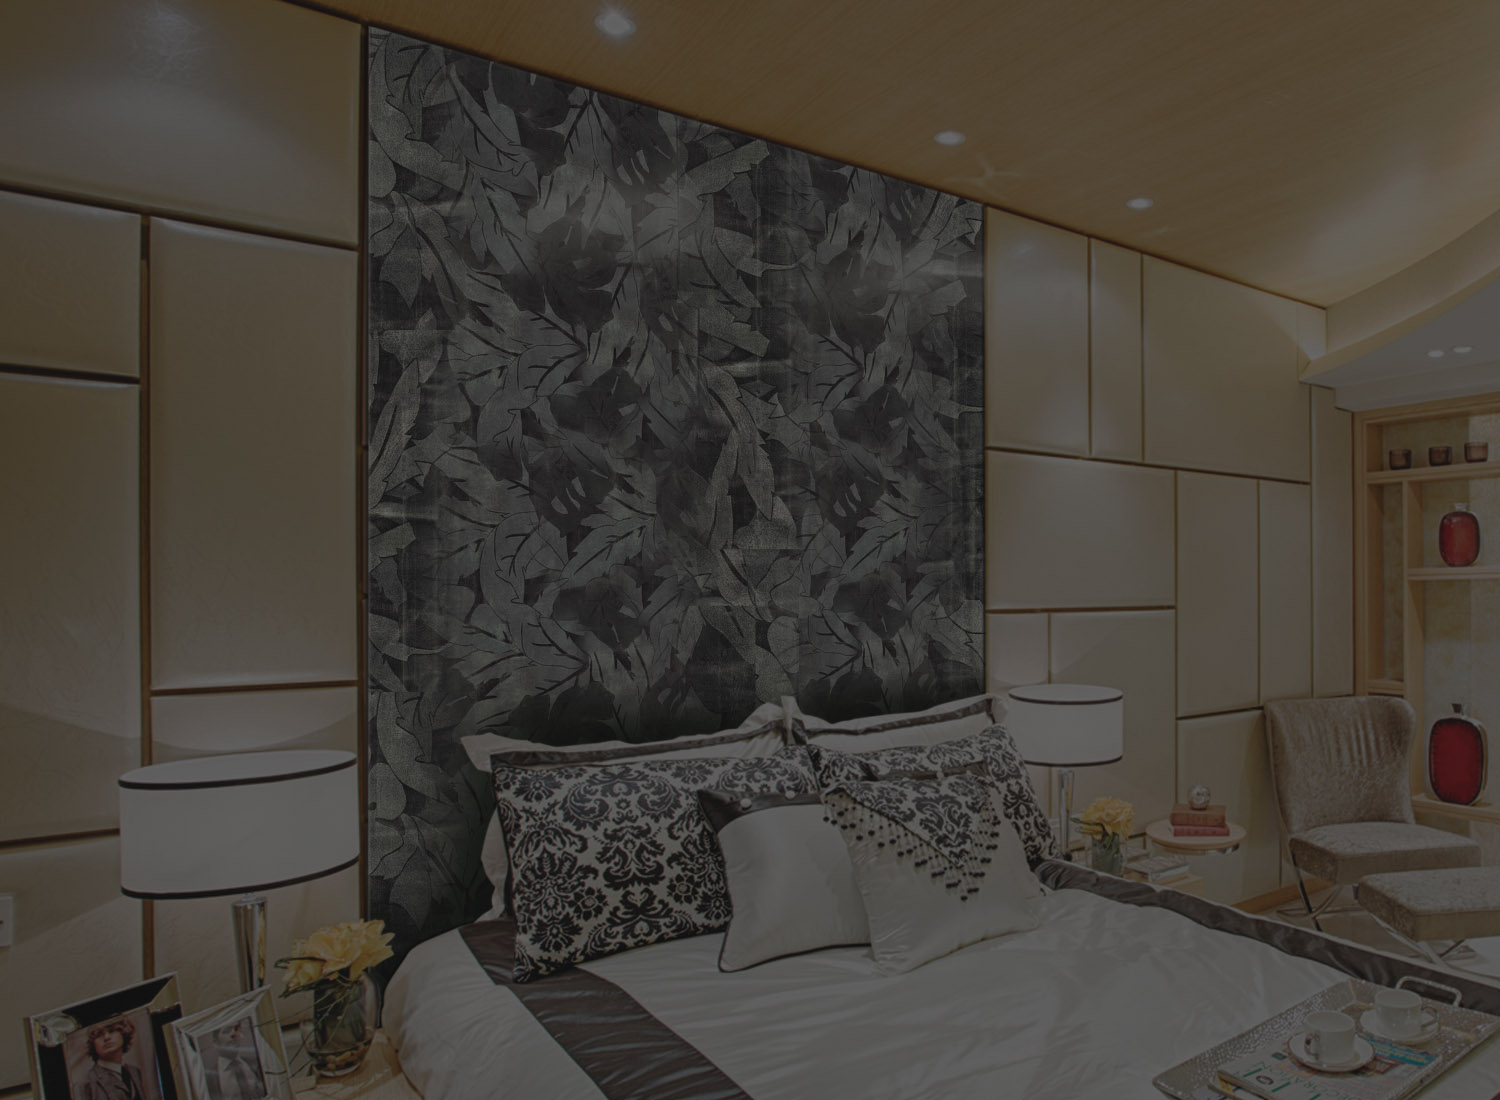 Interior designer paneling claddingCharcoal boards India